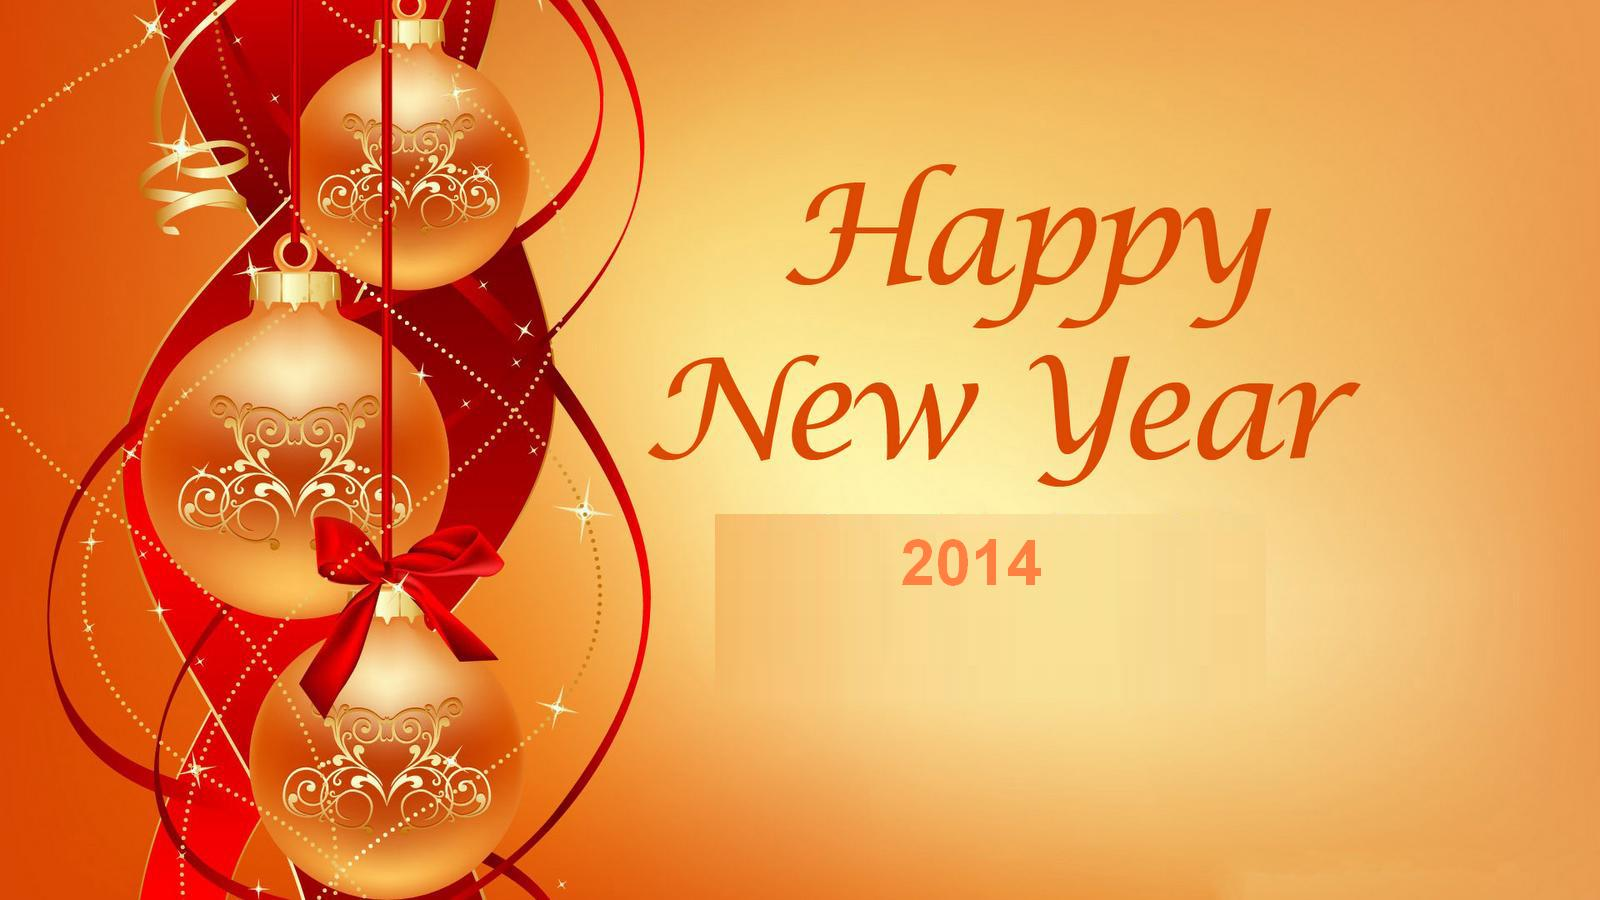 Happy New Year 2014 images